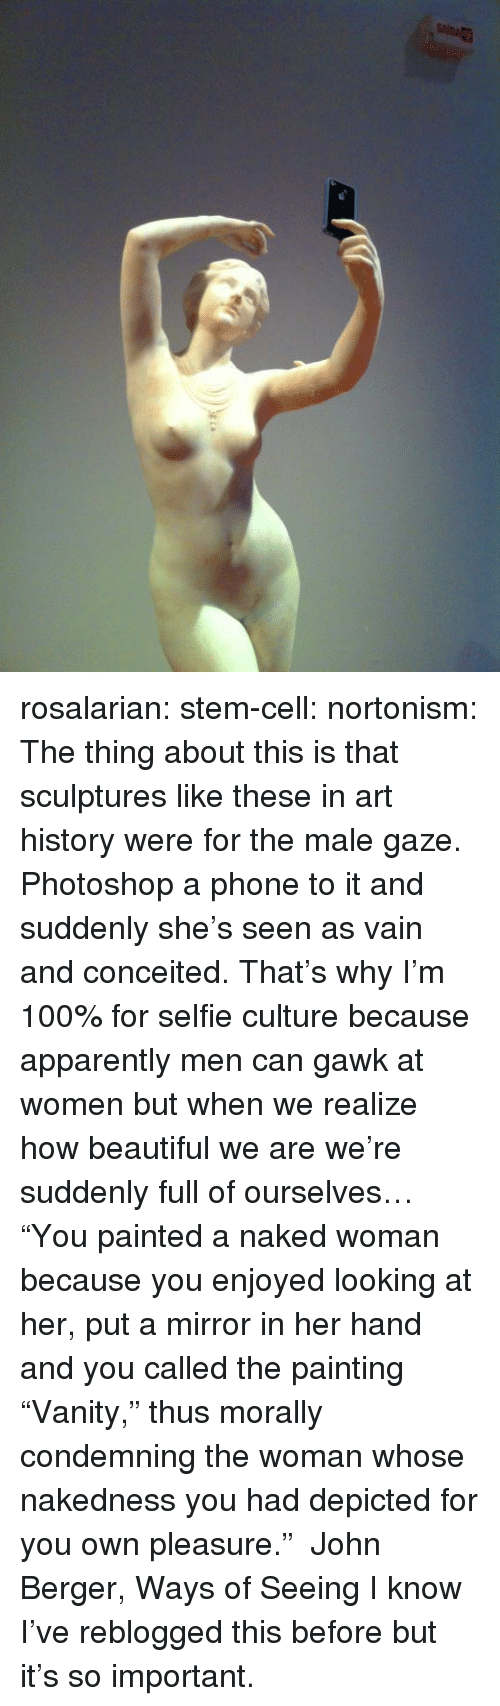 """Anaconda, Apparently, and Beautiful: rosalarian:  stem-cell:  nortonism:  The thing about this is that sculptures like these in art history were for the male gaze. Photoshop a phone to it and suddenly she's seen as vain and conceited. That's why I'm 100% for selfie culture because apparently men can gawk at women but when we realize how beautiful we are we're suddenly full of ourselves…  """"You painted a naked woman because you enjoyed looking at her, put a mirror in her hand and you called the painting """"Vanity,"""" thus morally condemning the woman whose nakedness you had depicted for you own pleasure."""" ― John Berger, Ways of Seeing  I know I've reblogged this before but it's so important."""